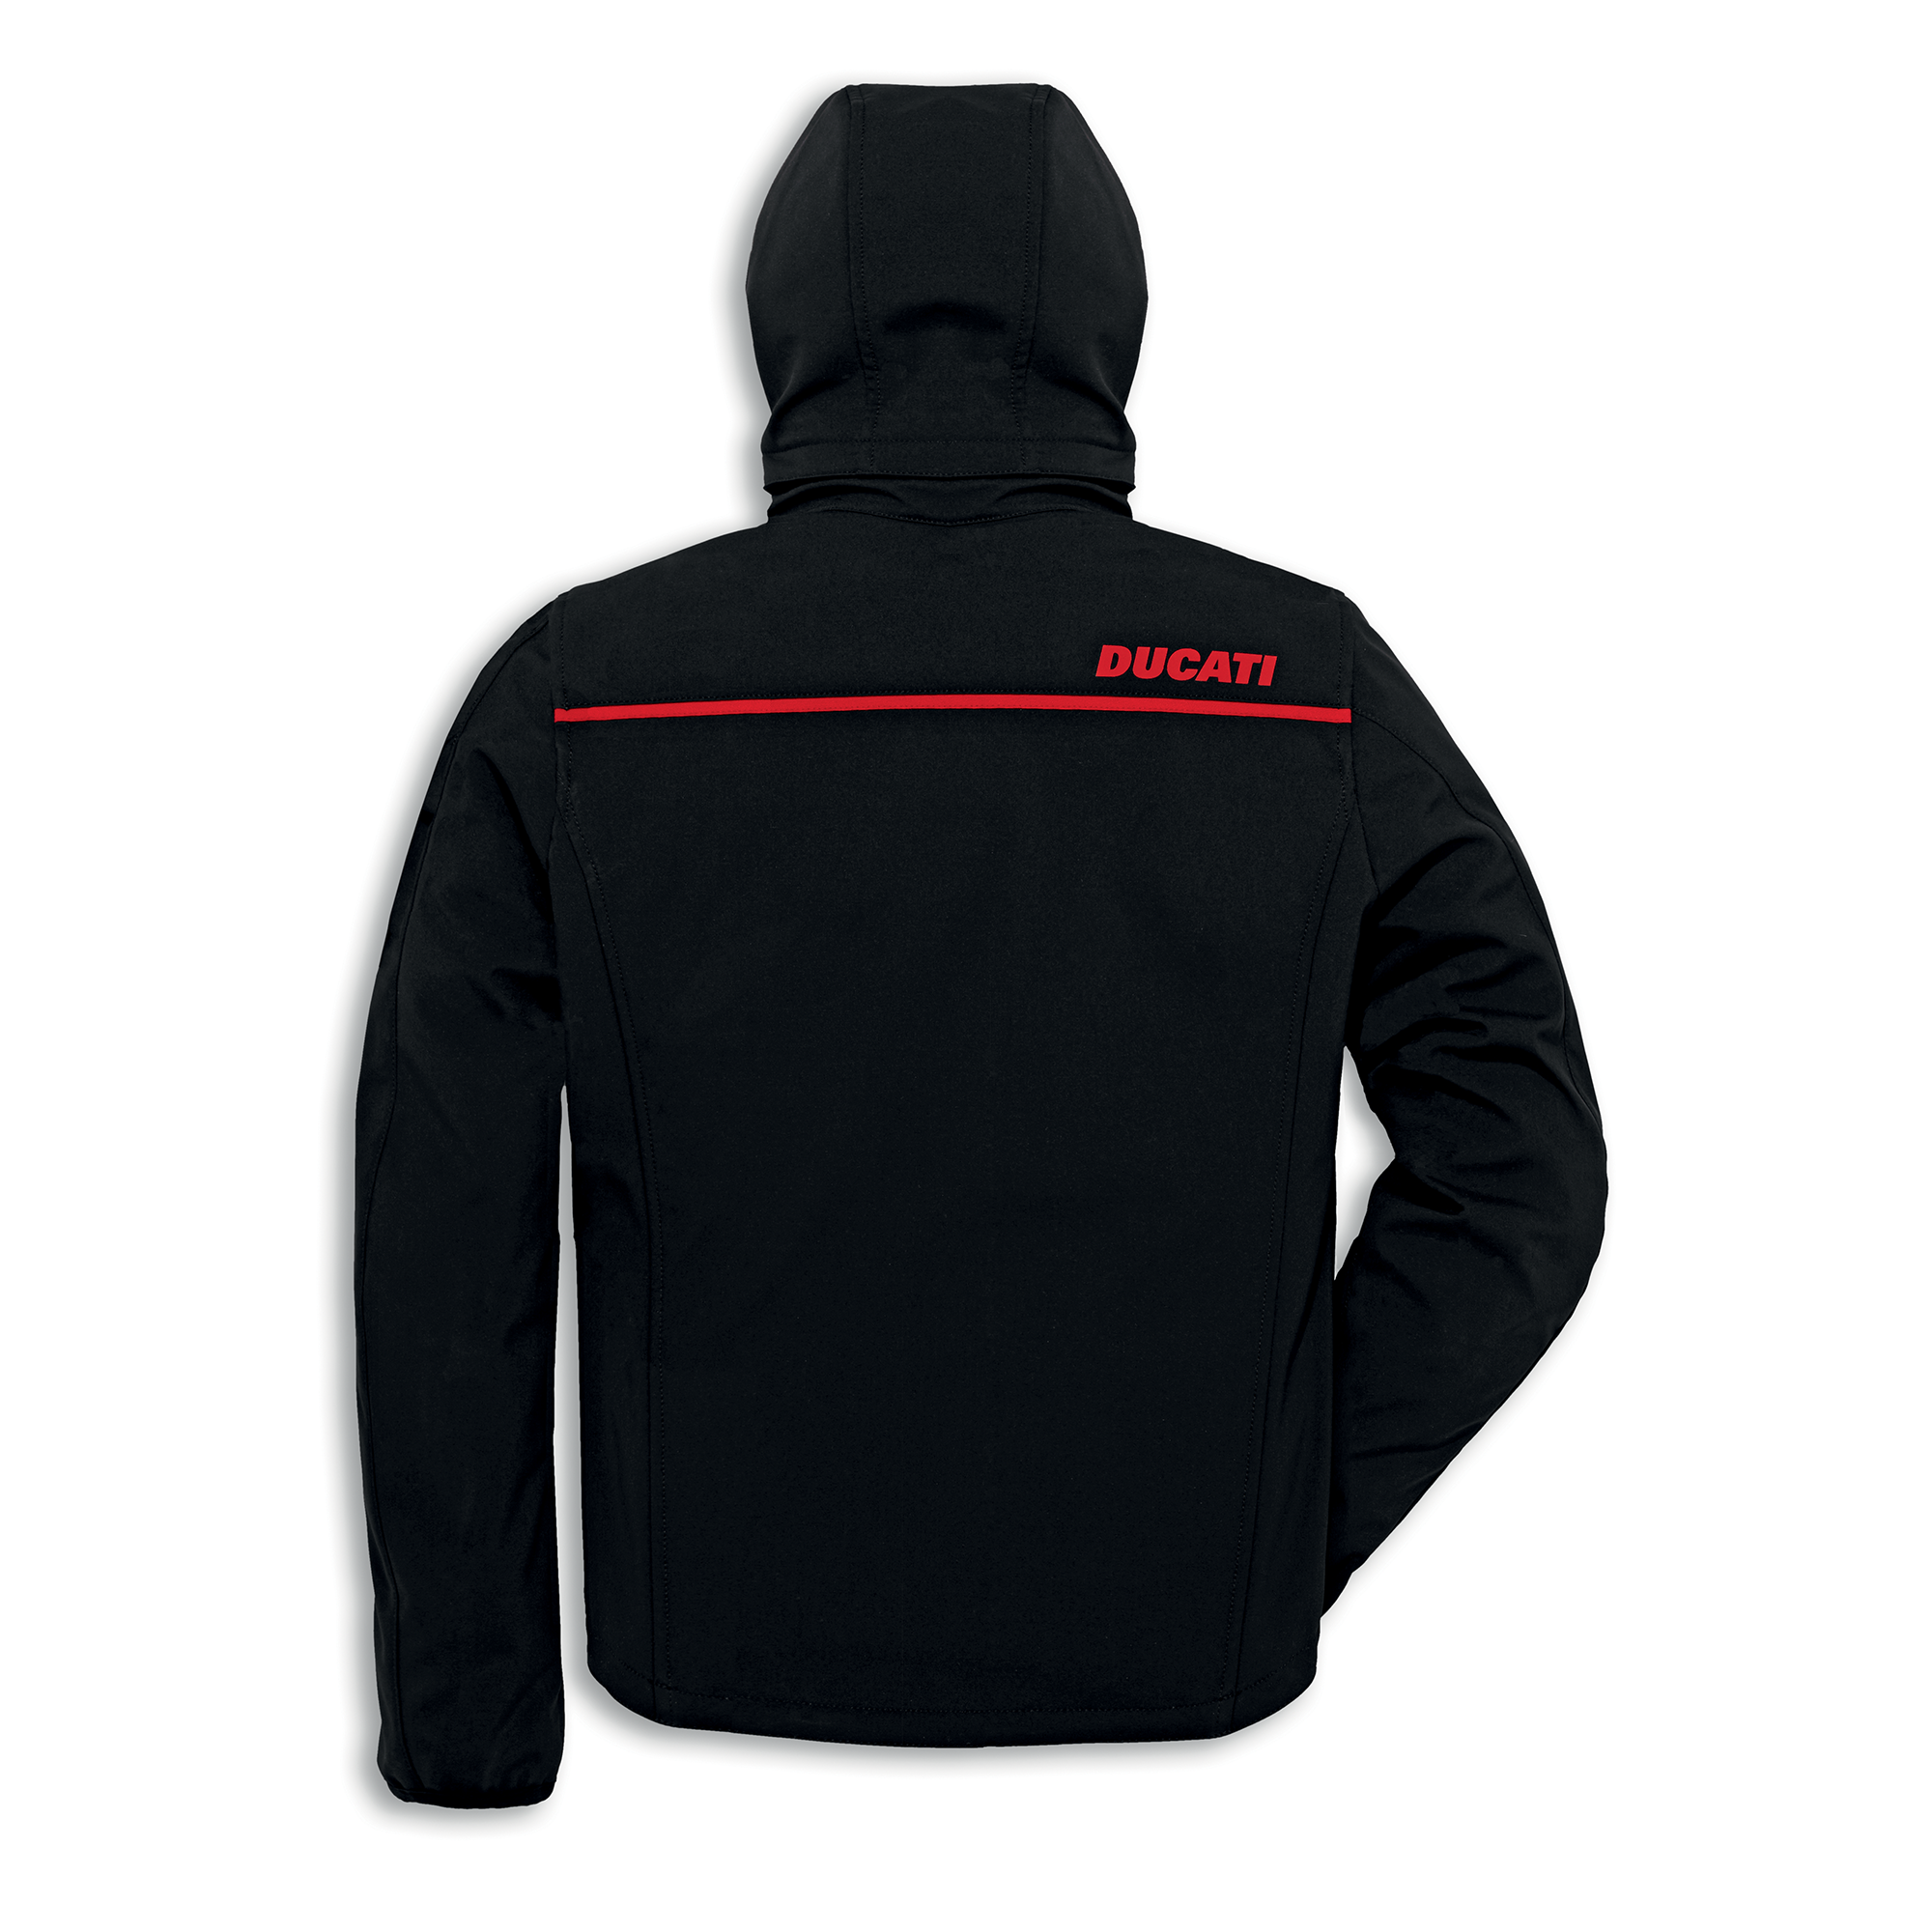 Redline Fabric jacket